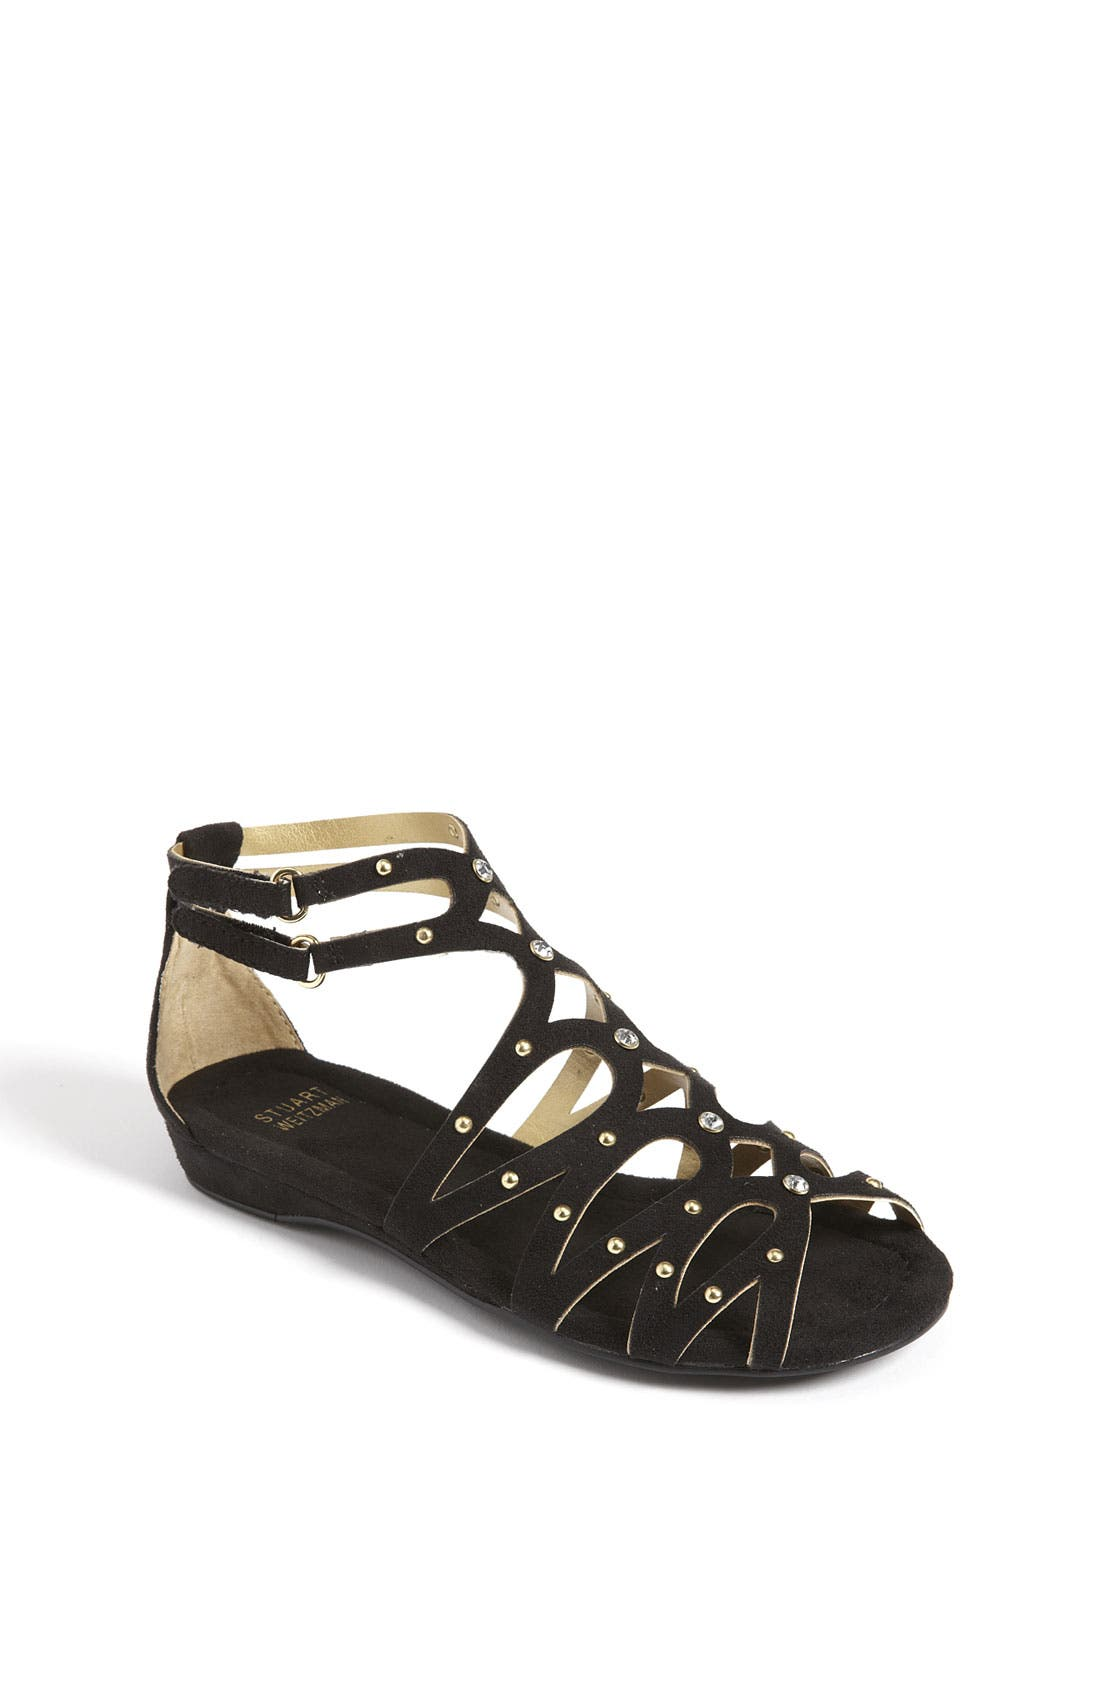 Main Image - Stuart Weitzman 'Goldigger' Sandal (Toddler, Little Kid & Big Kid)